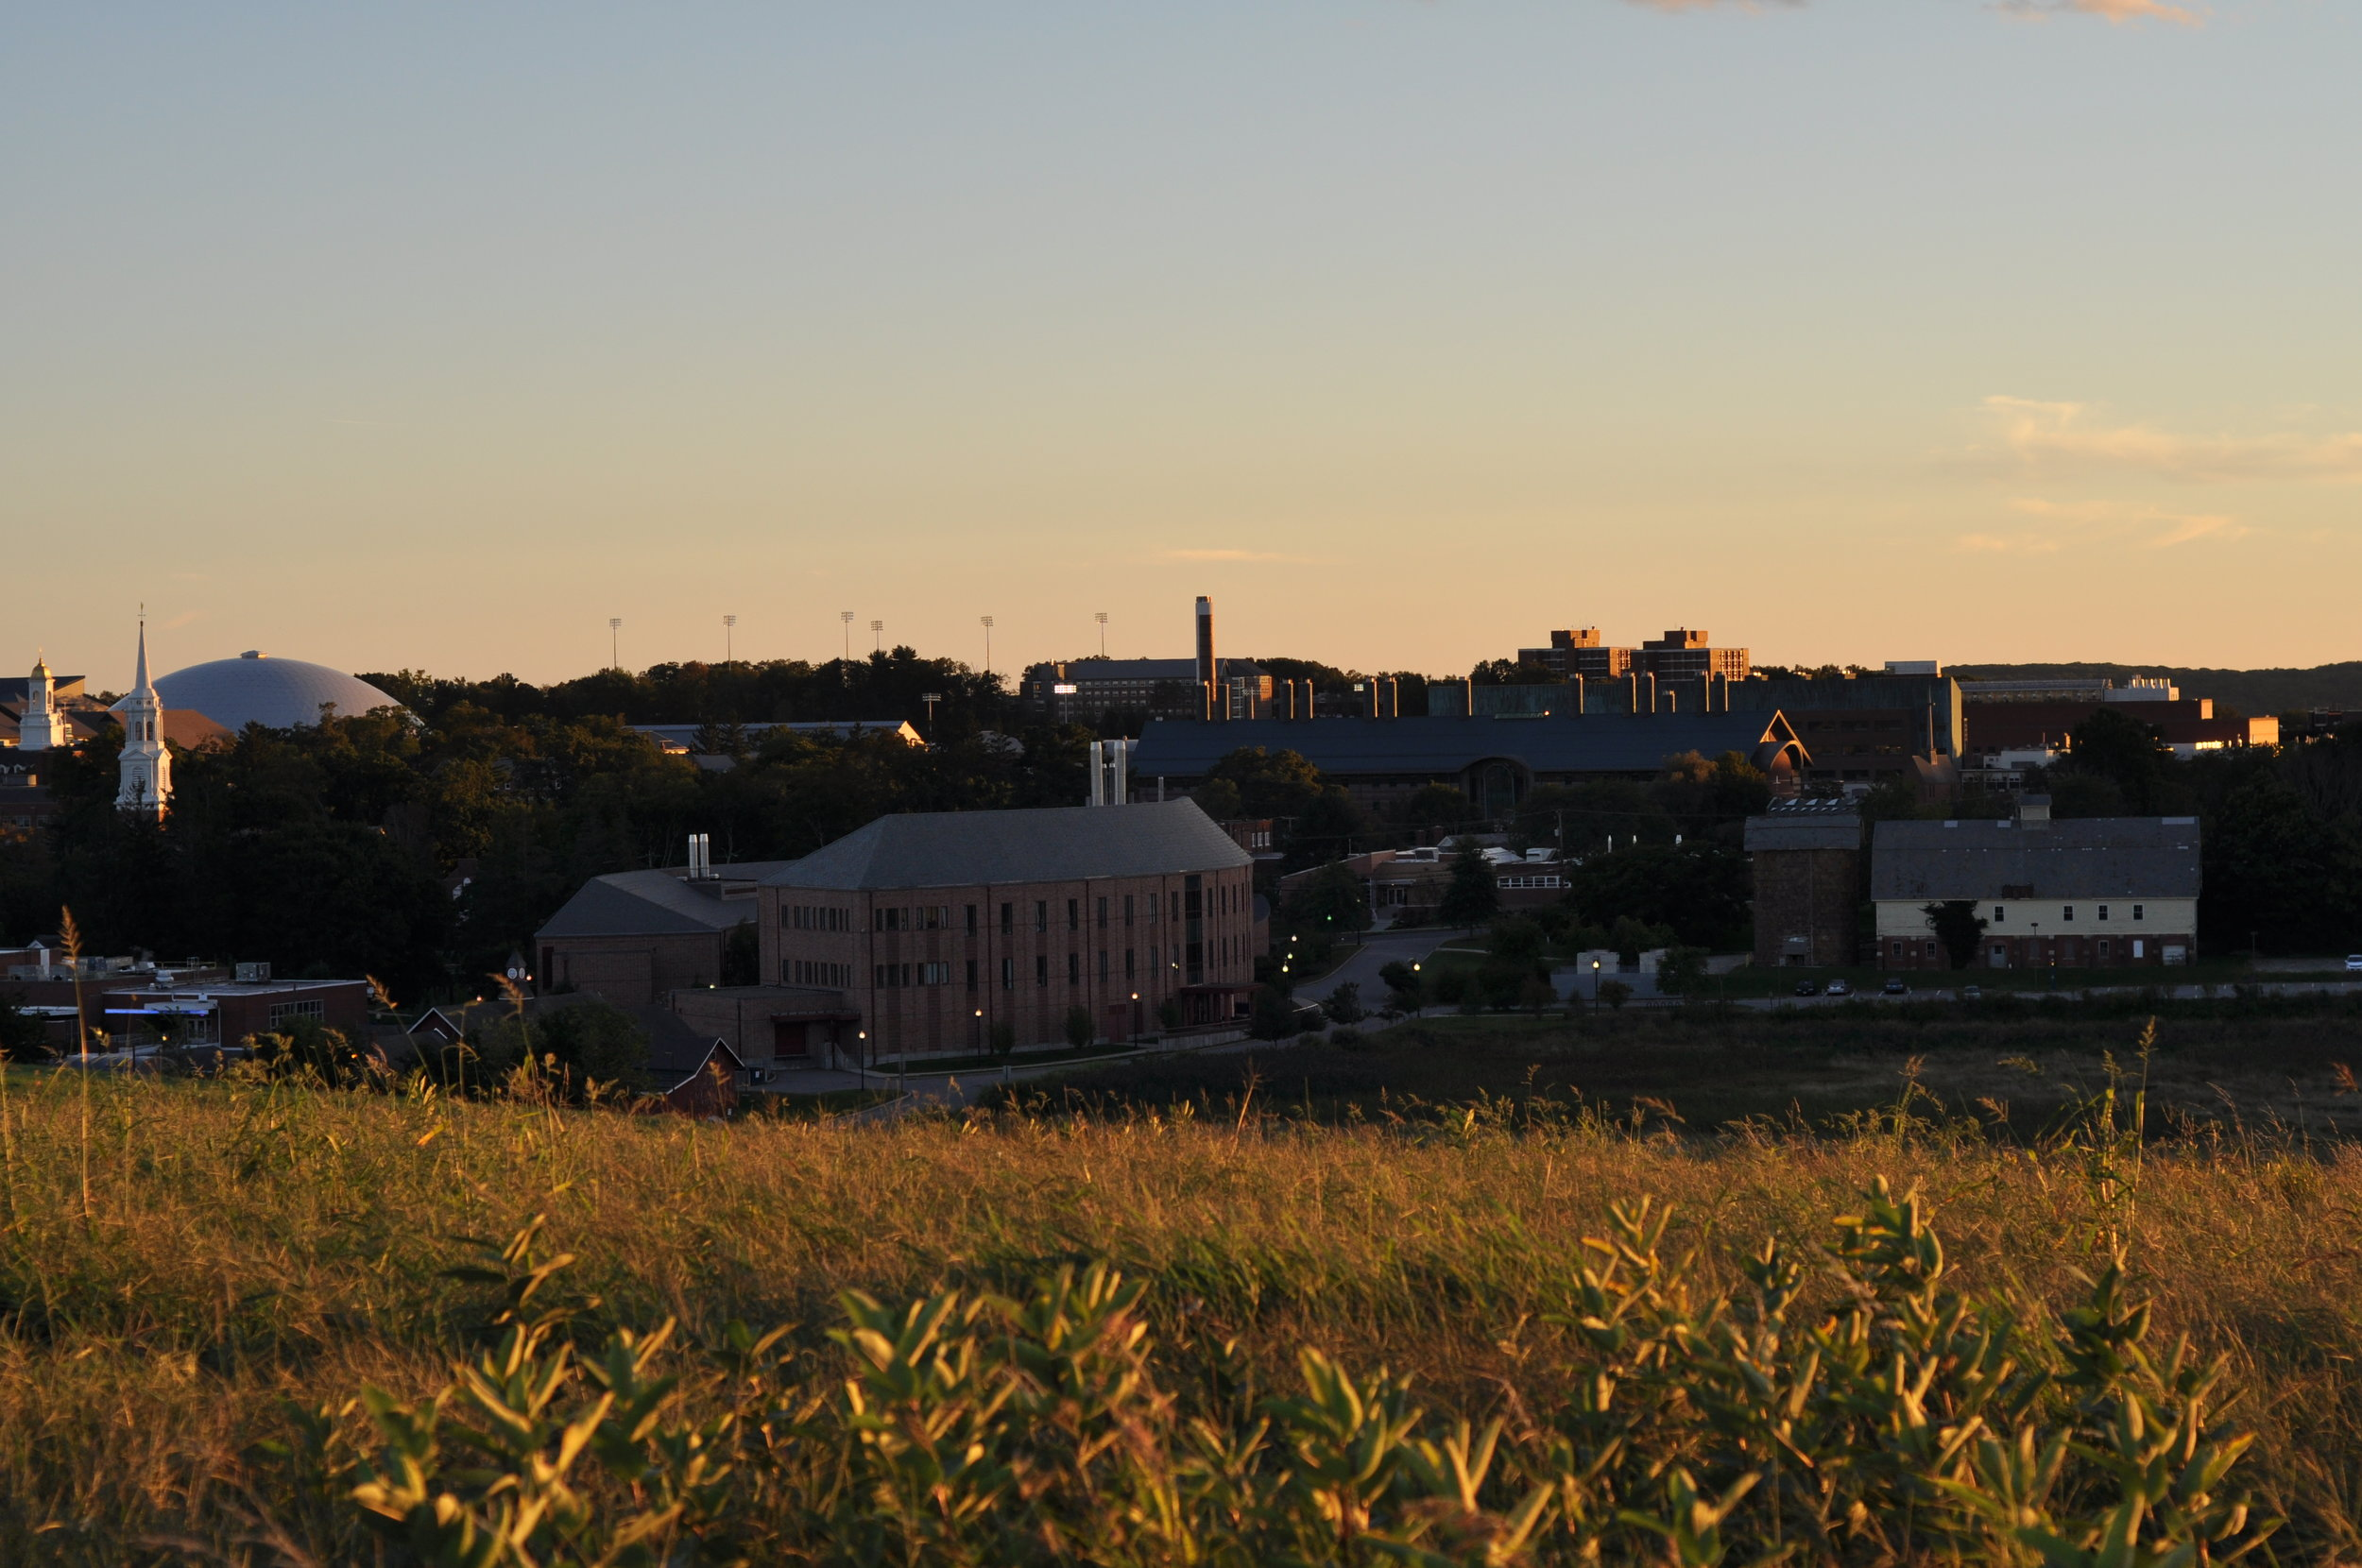 Sunrise at Horsebarn Hill is a must see at least once before graduation. (File photo)